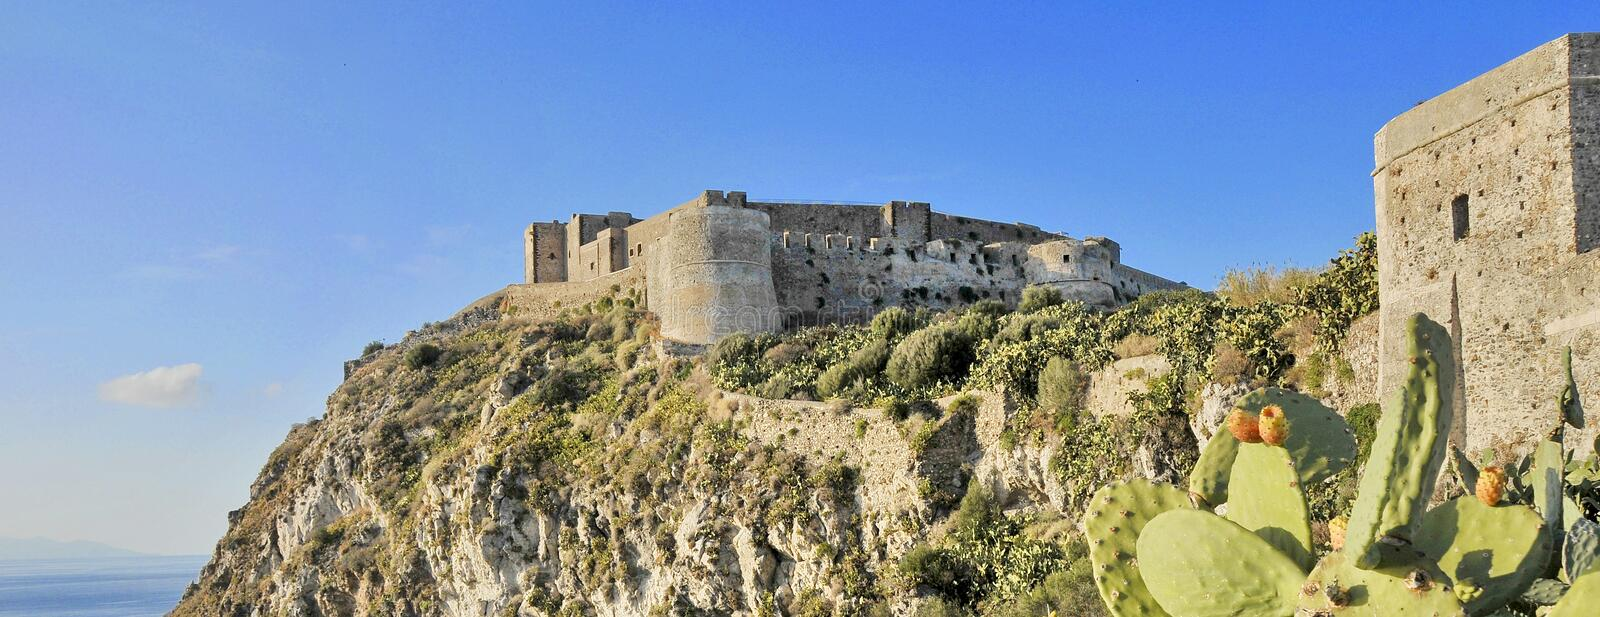 Castle of Milazzo stock images